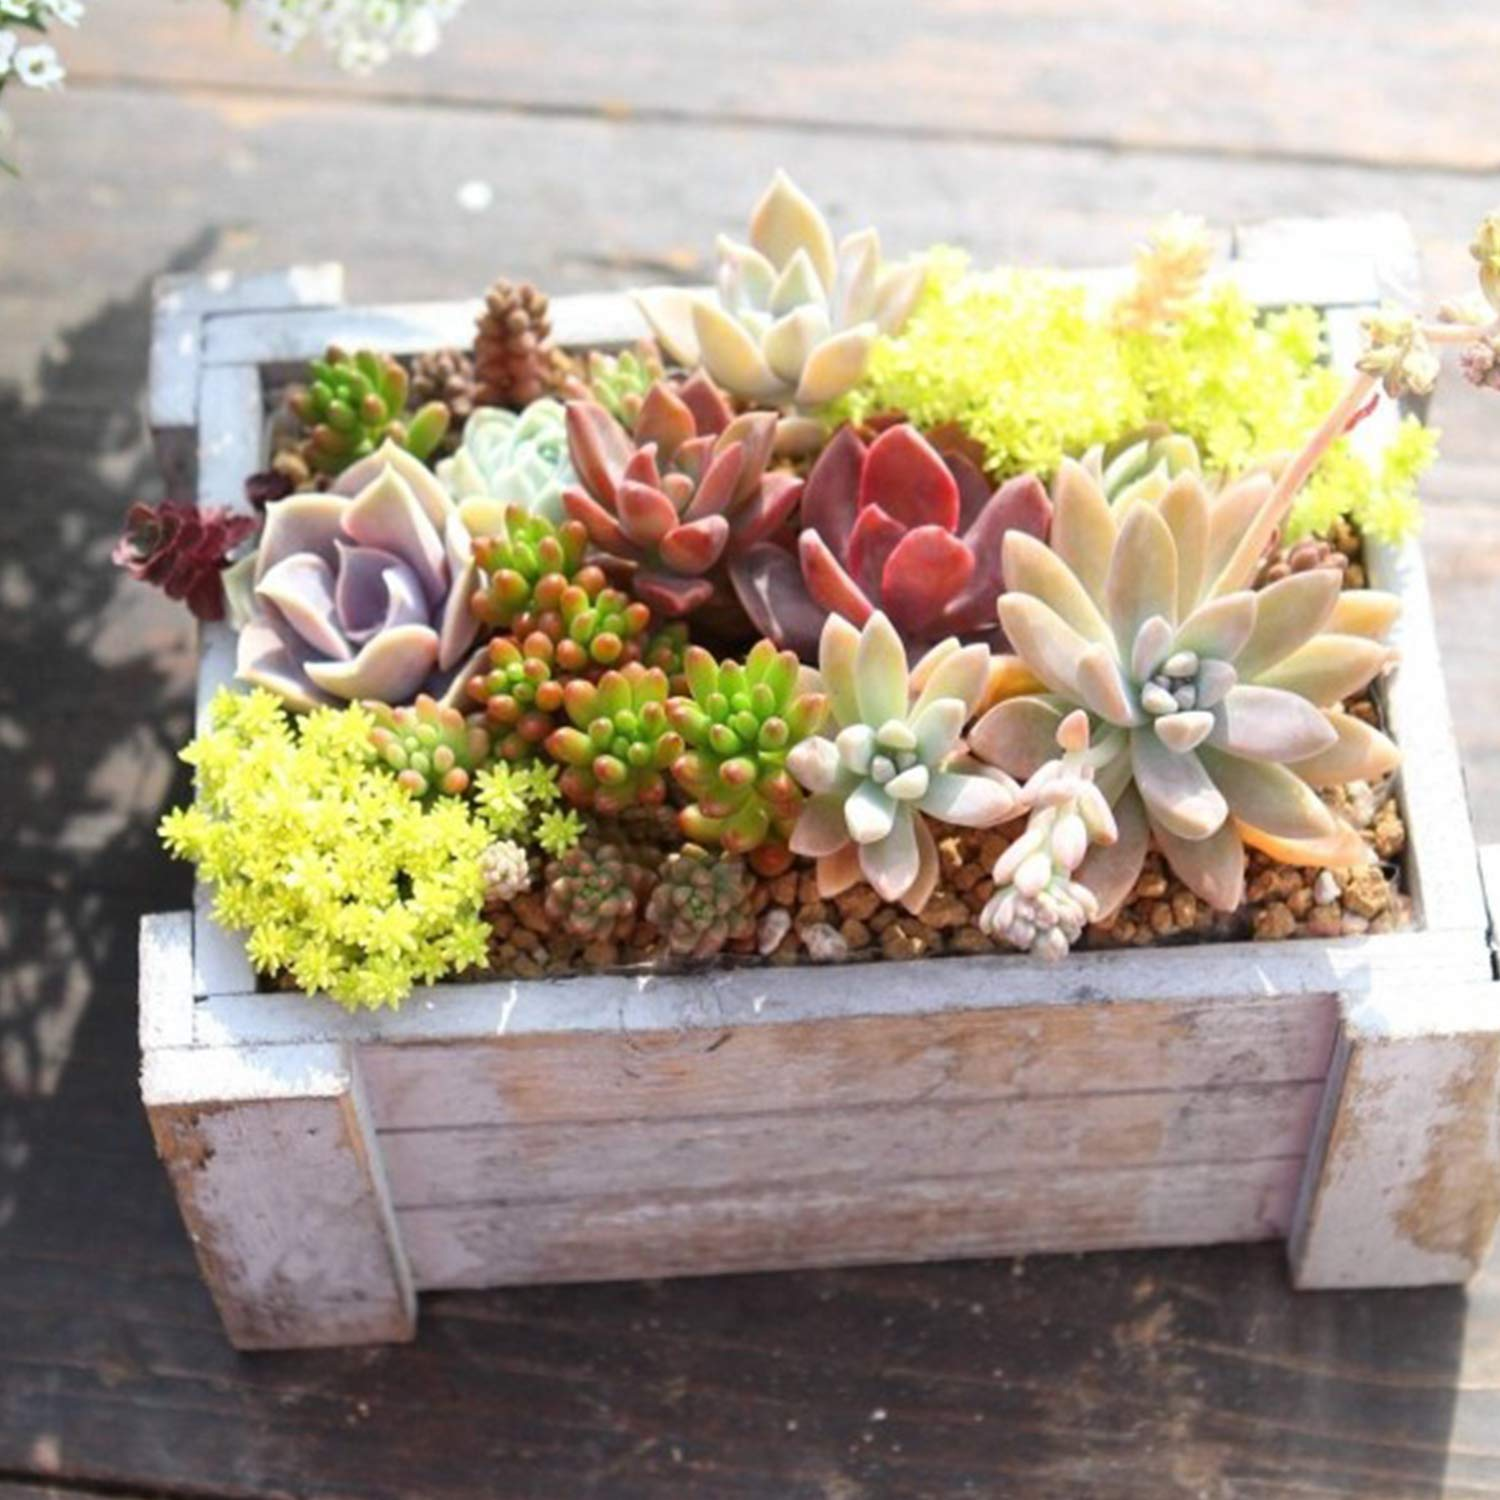 Premium Rosette Succulents, 9 Assorted Rooted Succulents in 4'' Planter Pots with Soil, Real Live Succulents Bonsai for Indoor Home Office Cactus Decor, Terrariums, Mini Garden by The Next Gardener (Image #6)